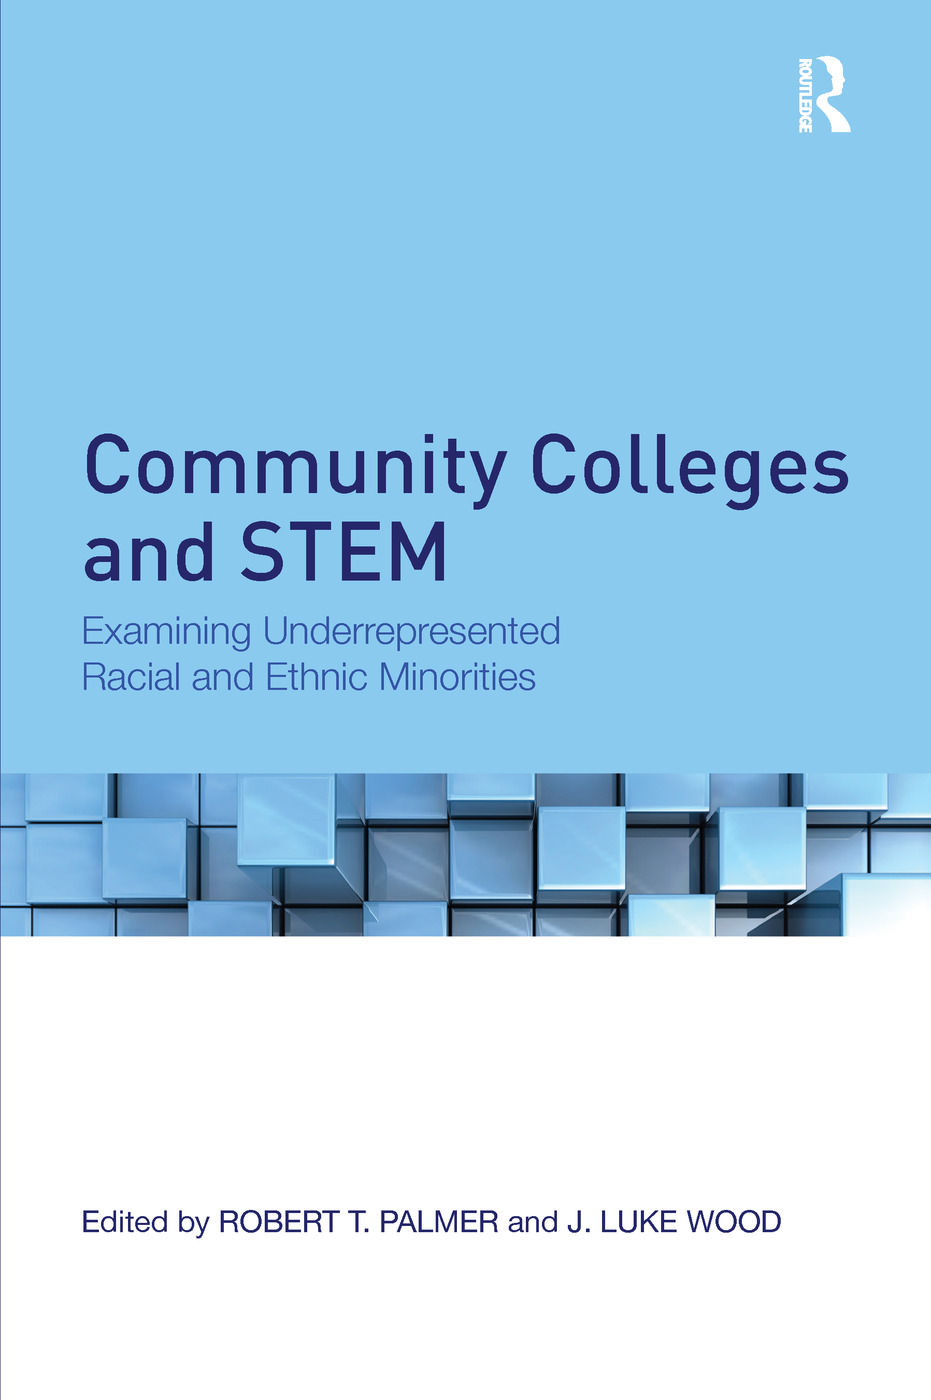 Community Colleges and STEM: Examining Underrepresented Racial and Ethnic Minorities book cover